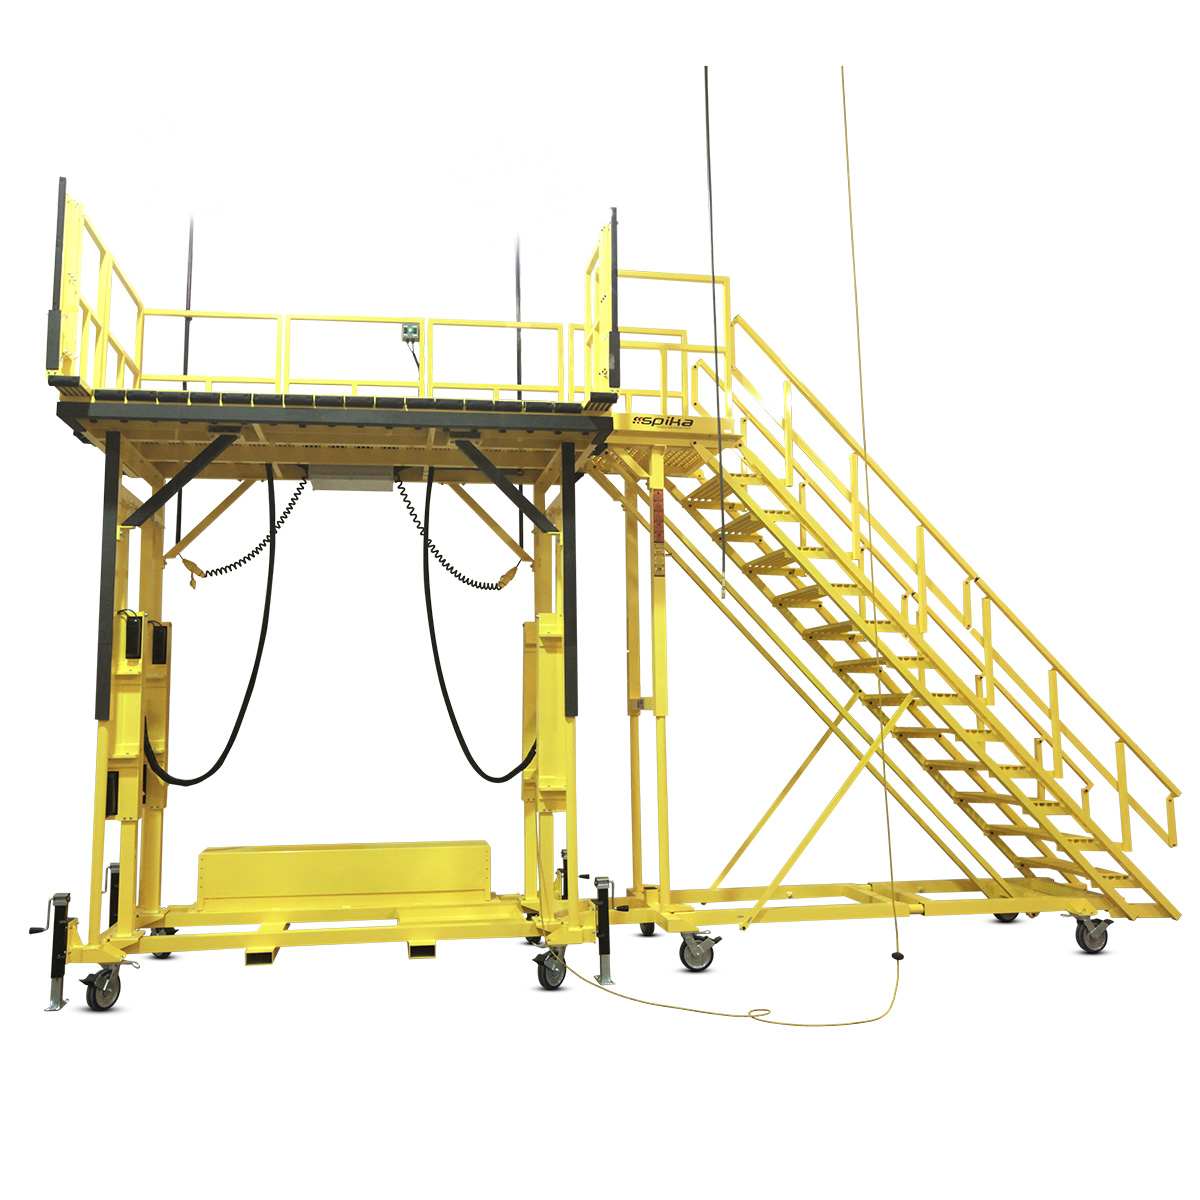 CH-47 Chinook Helicopter – Daily Maintenance Rust-resistant, UV protected powder coating in custom colors for OSHA compliant portable, aluminum work platforms.